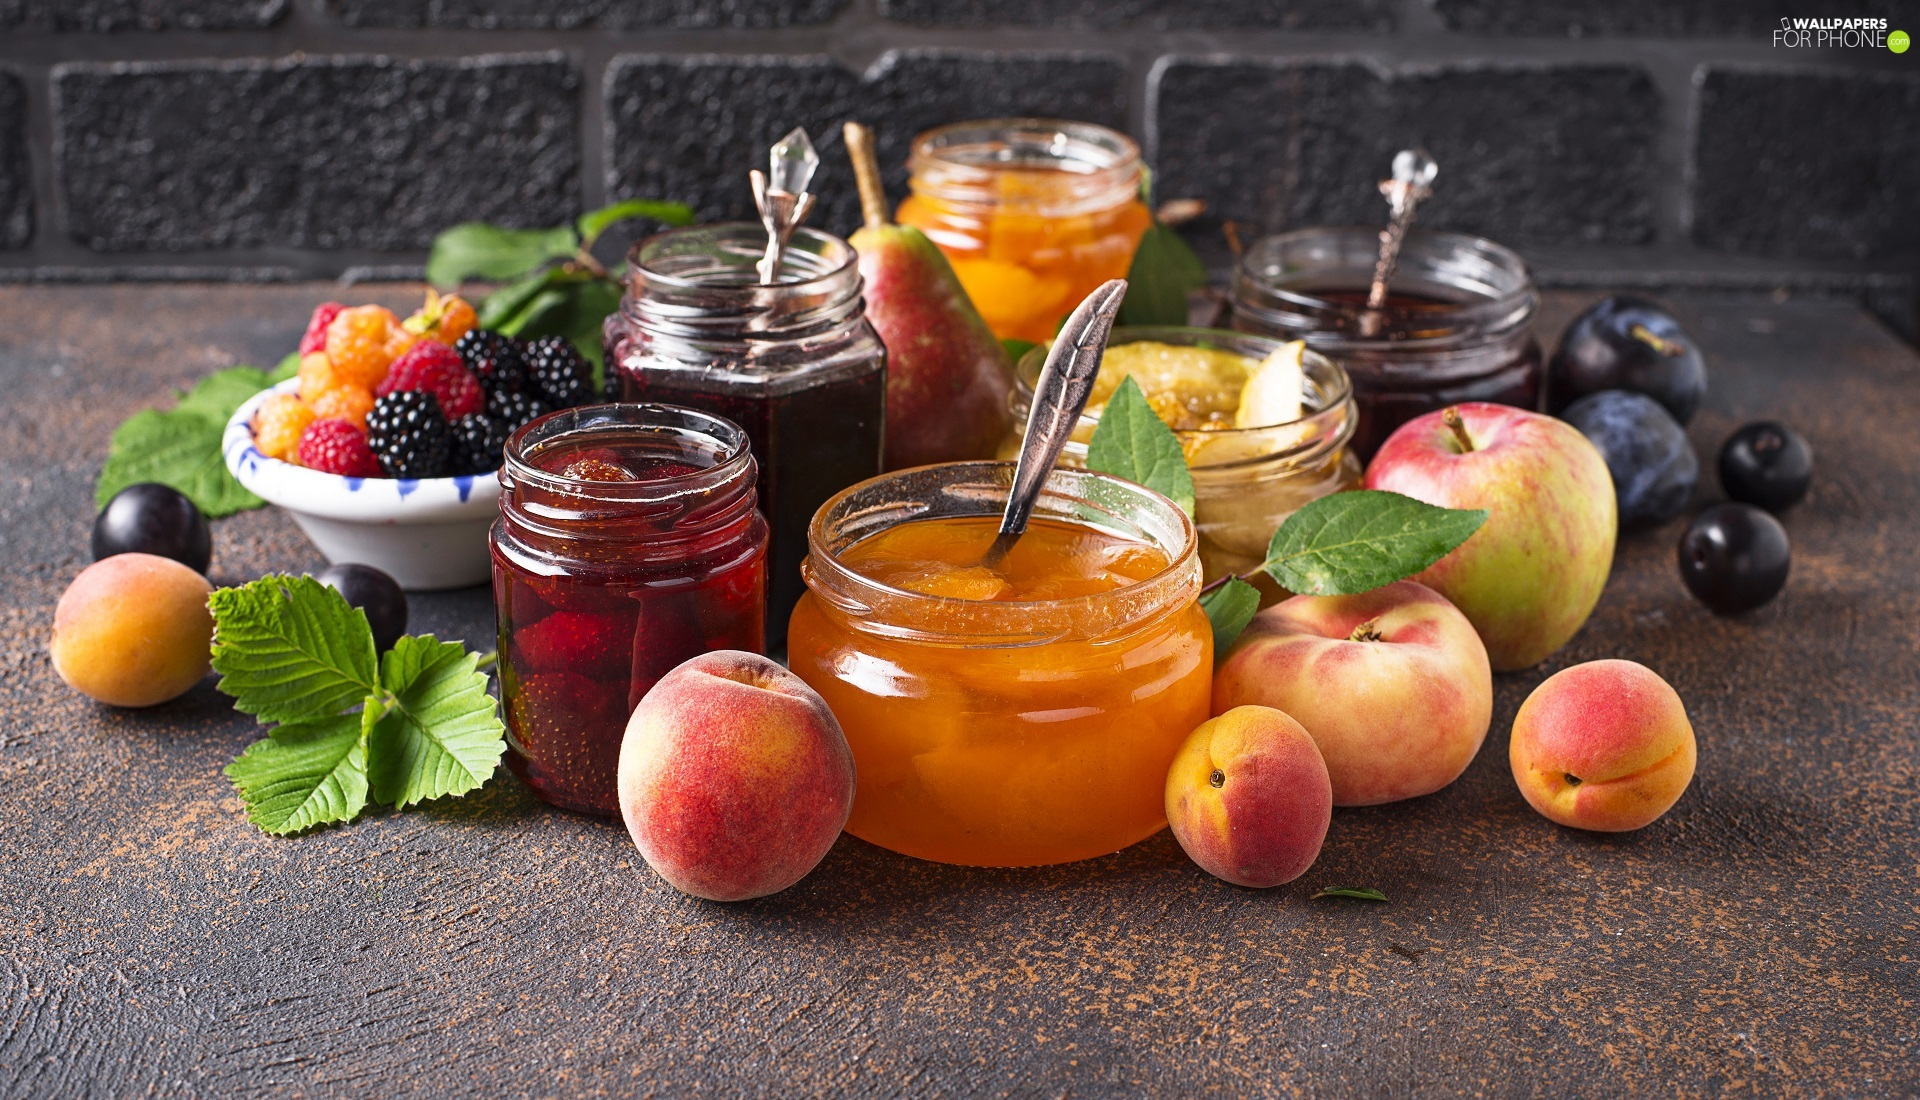 blackberries, peaches, blueberries, Jam, leaves, Truck concrete mixer, Jars, Apple, Spoons, Preparations, raspberries, plums, Fruits